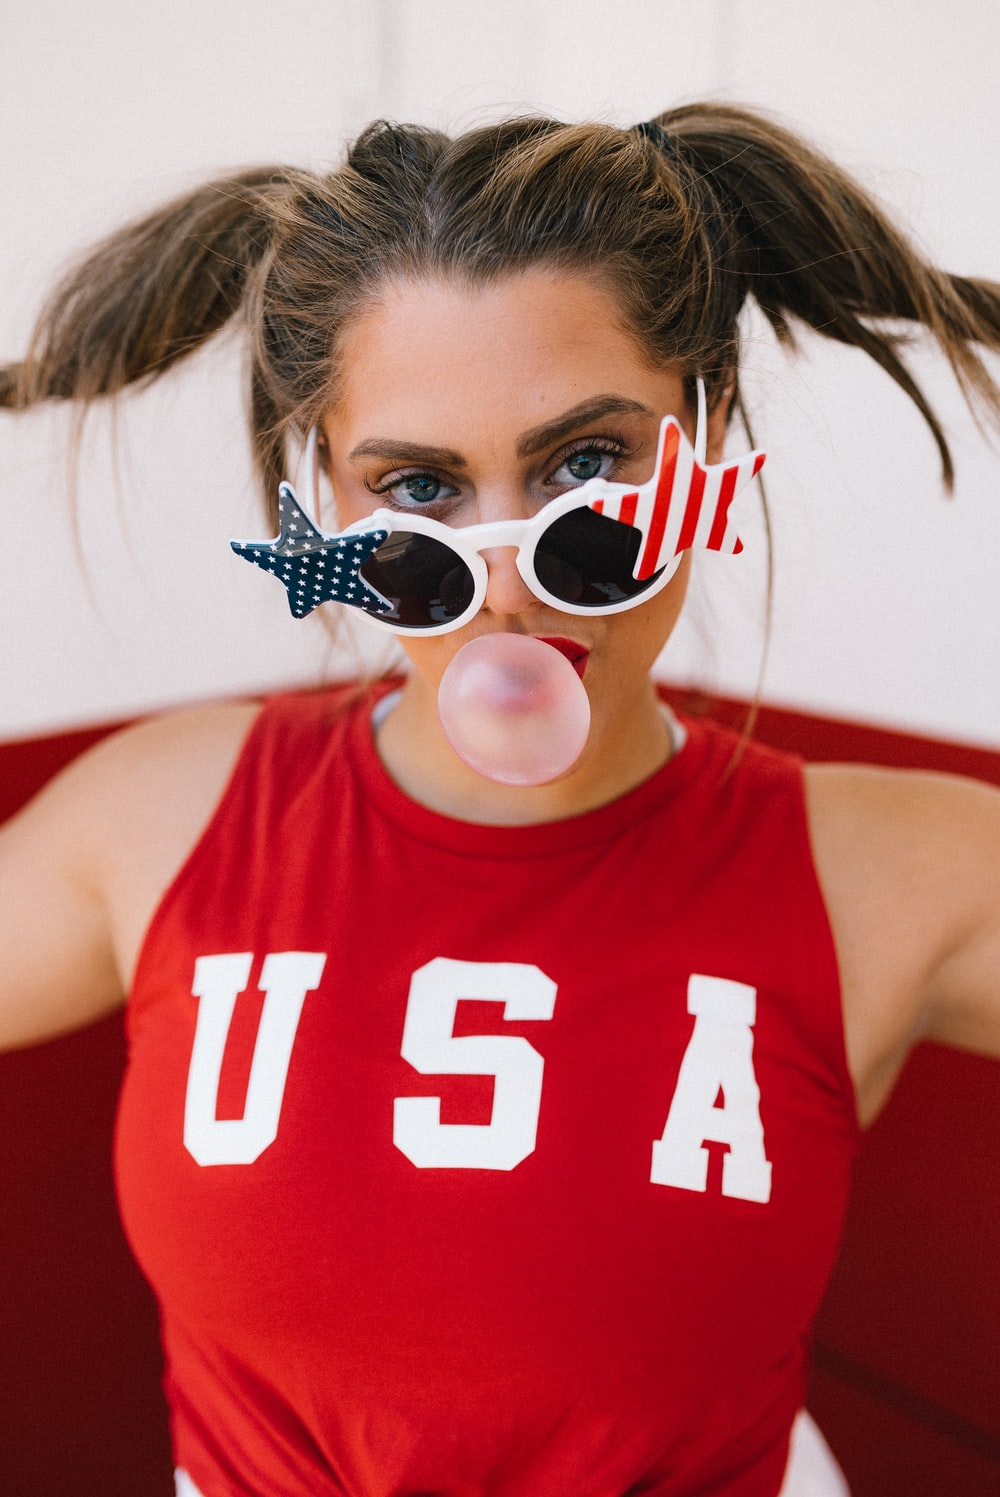 woman in red tank top wearing sunglasses